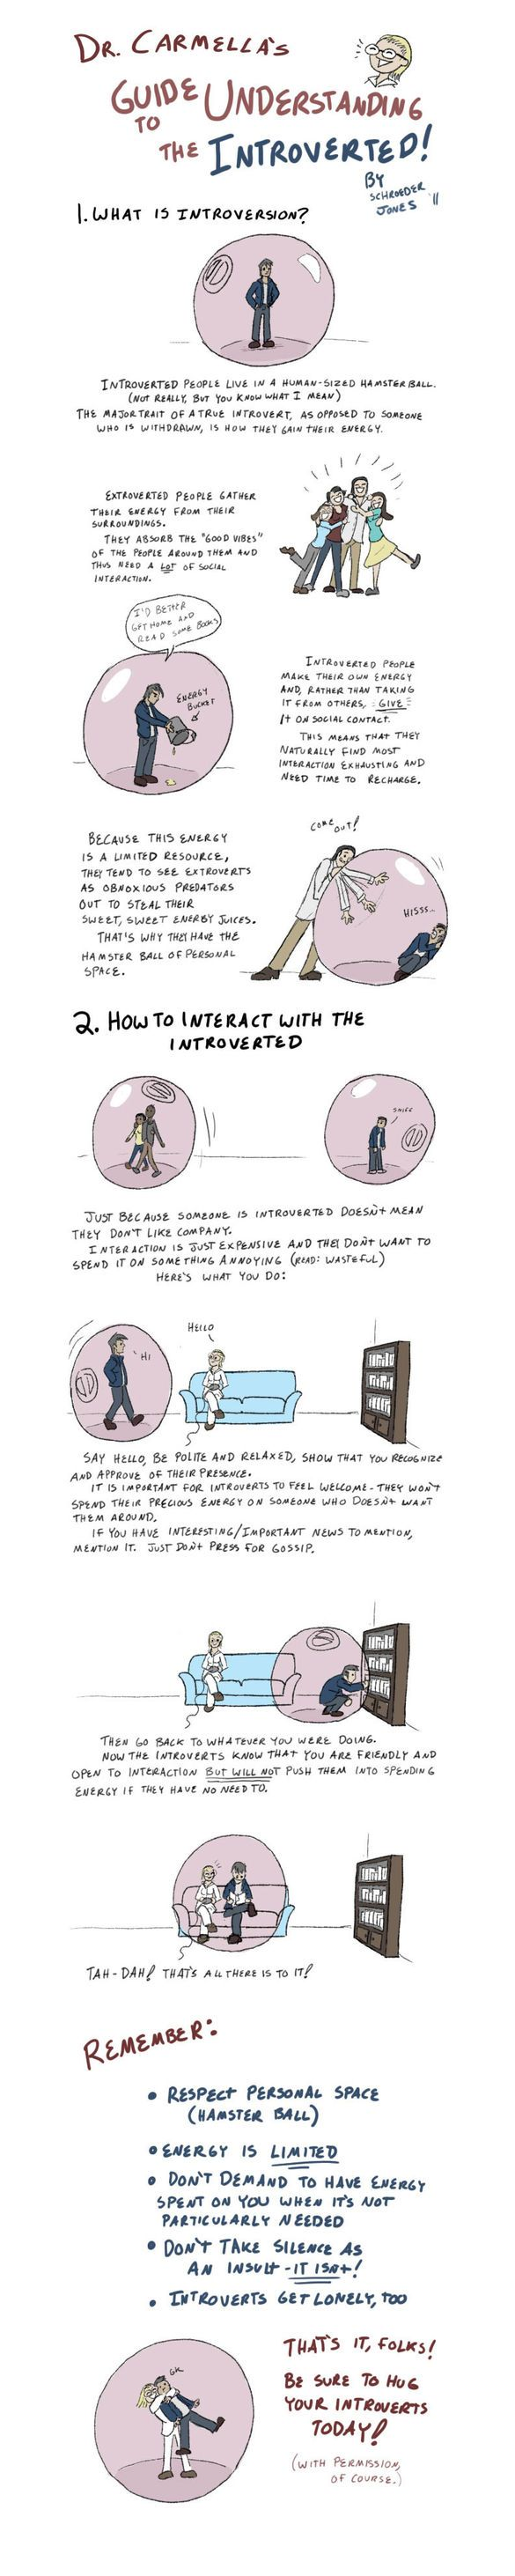 Dr. Carmella's Guide to Understanding the Introverted by Schroeder Jones: Remember This, Guide To, Hamsters, Funny, Truths, So True, Introvert, People, True Stories